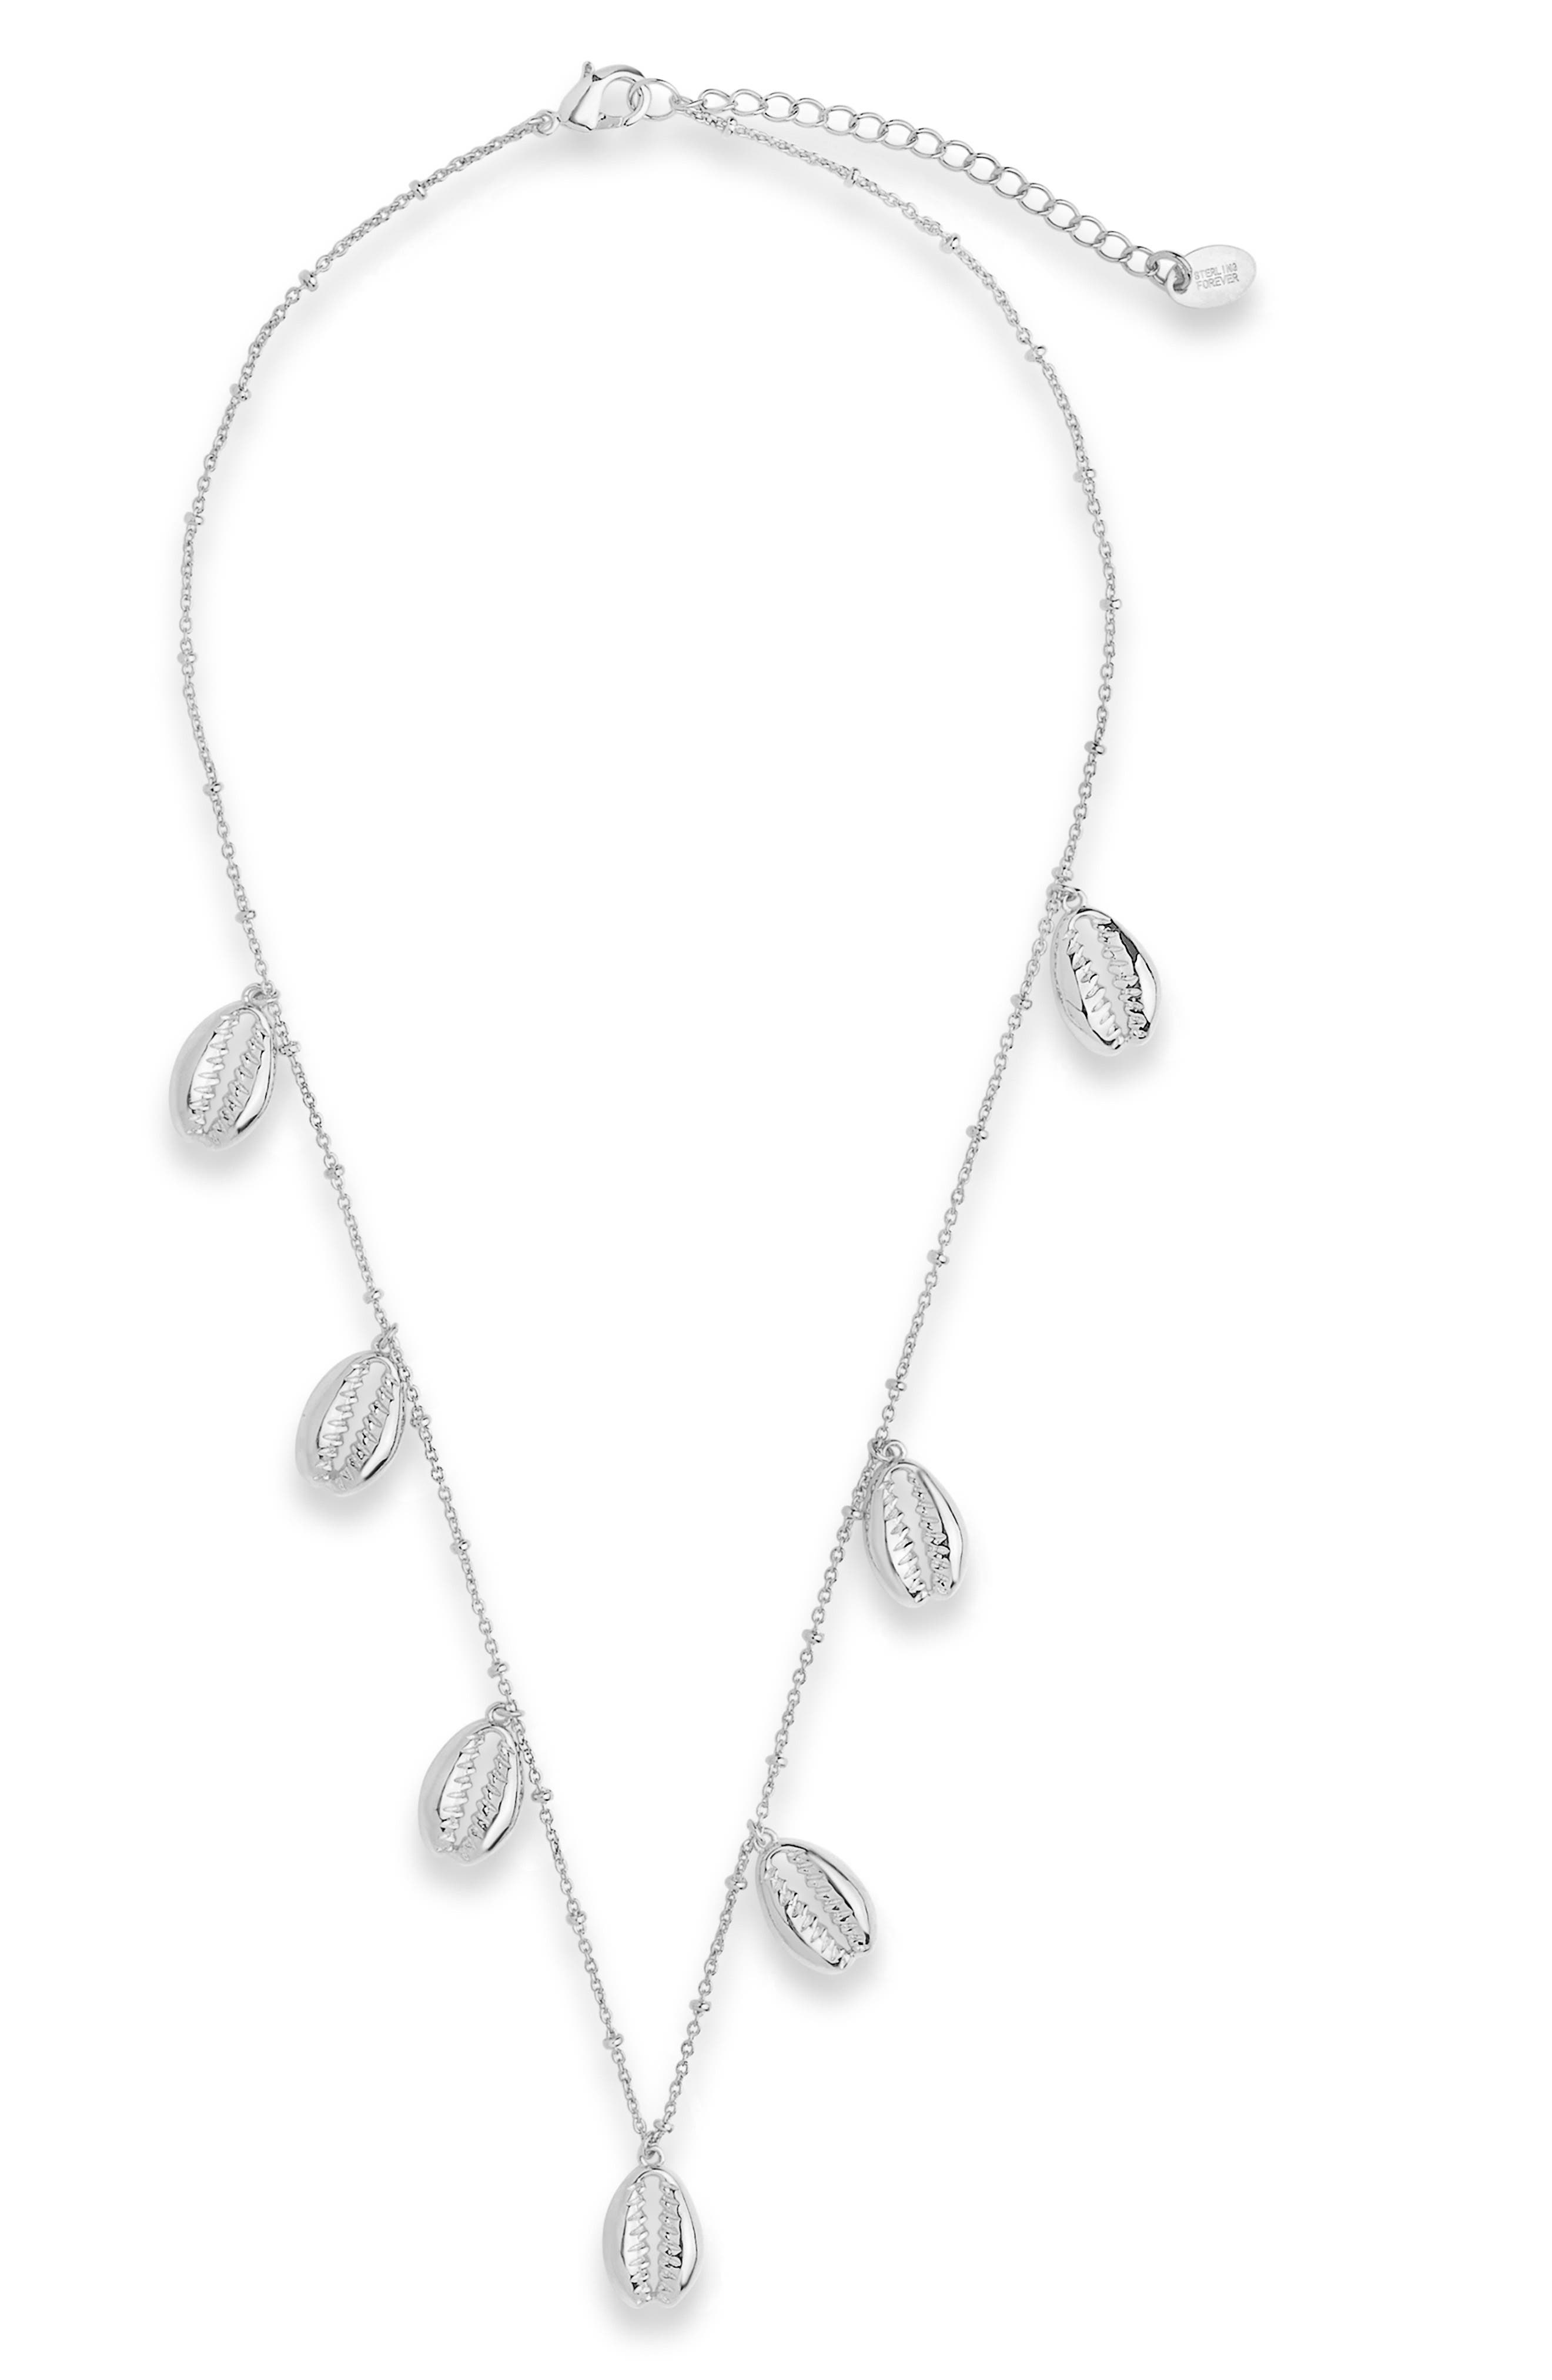 In this fun-to-wear necklace, gleaming charms invoke beachy memories of the puka shell necklace you bought on that childhood island vacation. Style Name: Sterling Forever Puka Shell Charm Necklace. Style Number: 6114412. Available in stores.